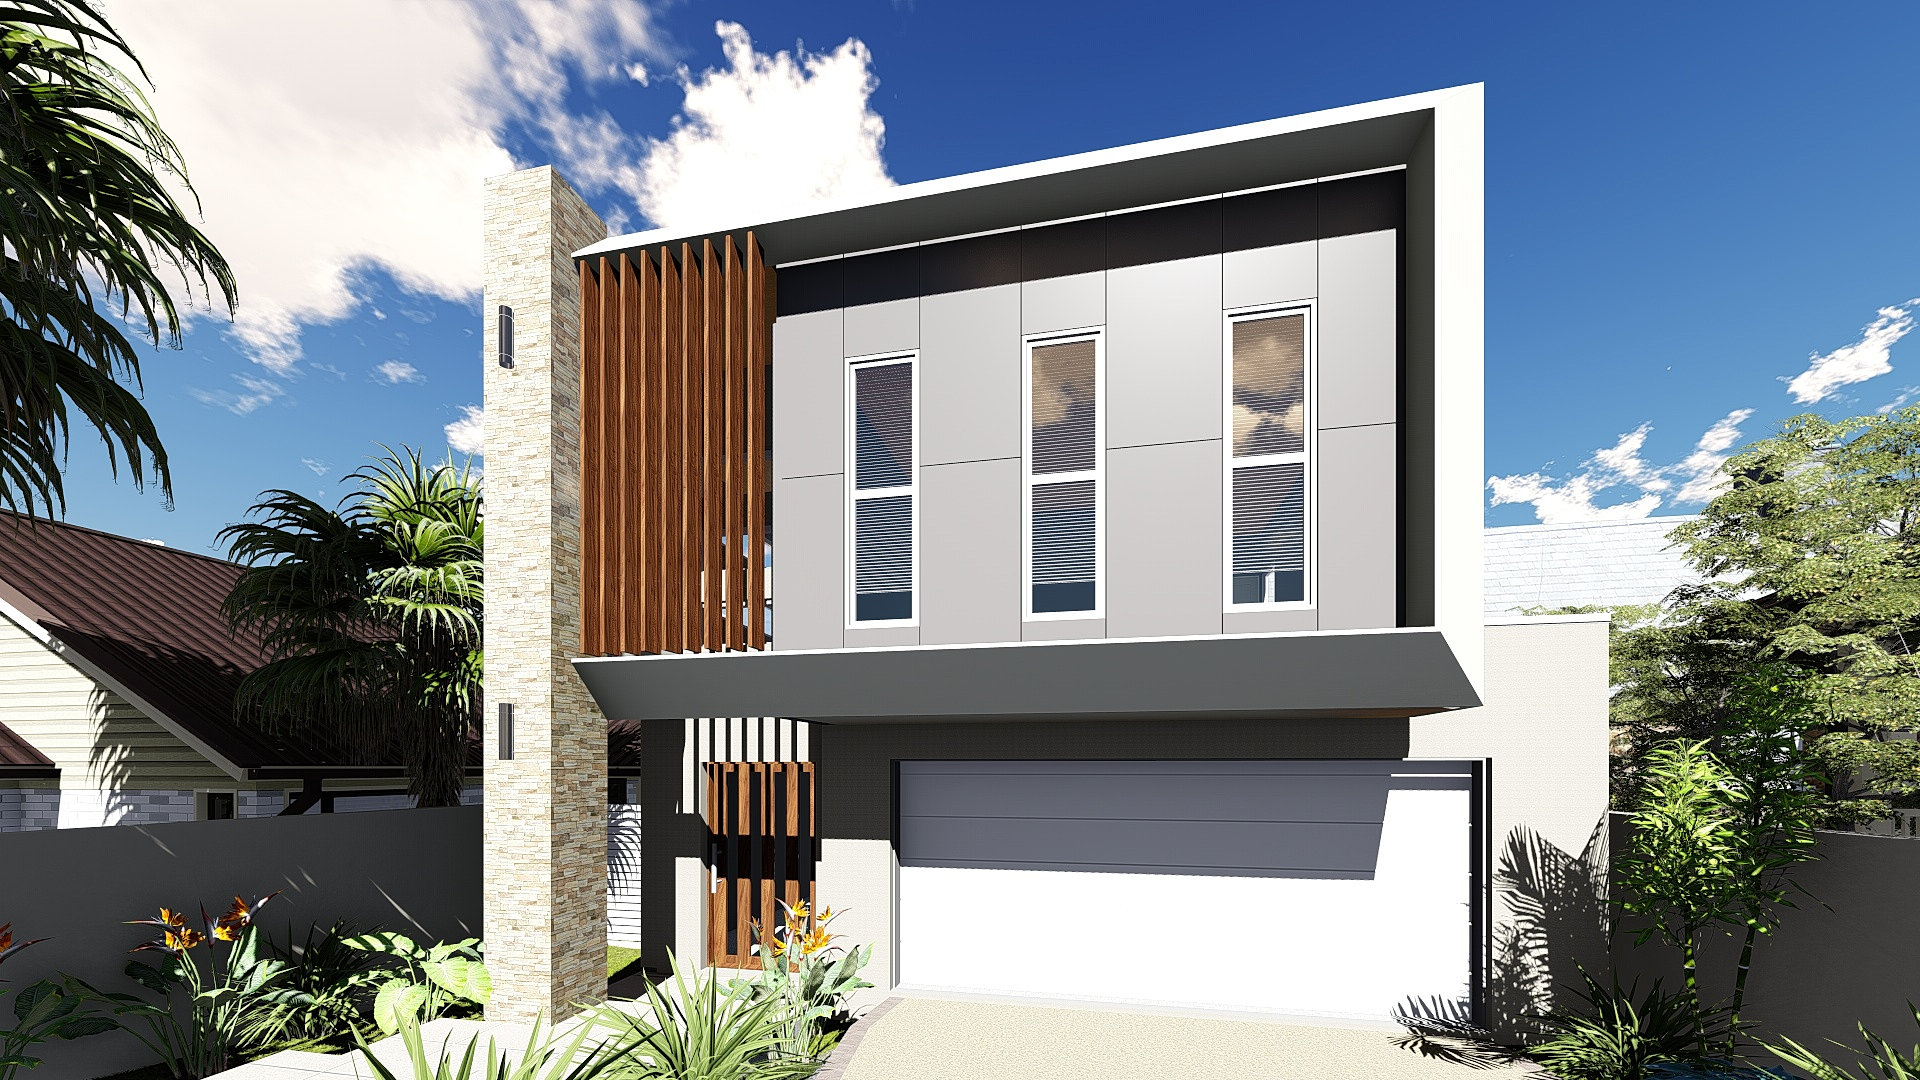 Blueprint designs small lot homes for narrow blocks 2 storey narrow lot homes